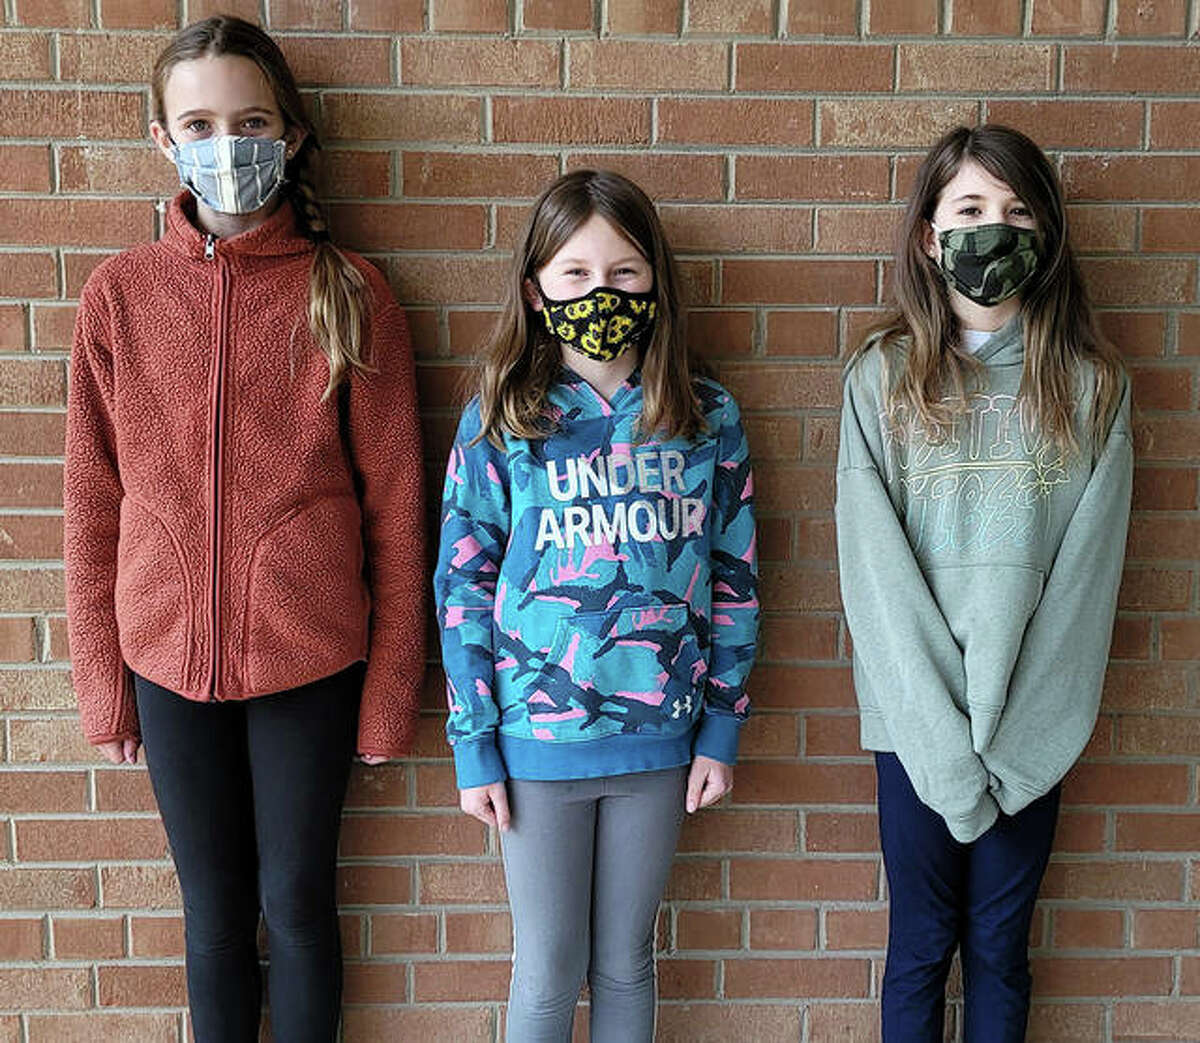 Woodland Elementary School young authors: from left, Maggie Hertz, fifth grade, Nora Moore, third grade, and Clara Johnson, fourth grade.